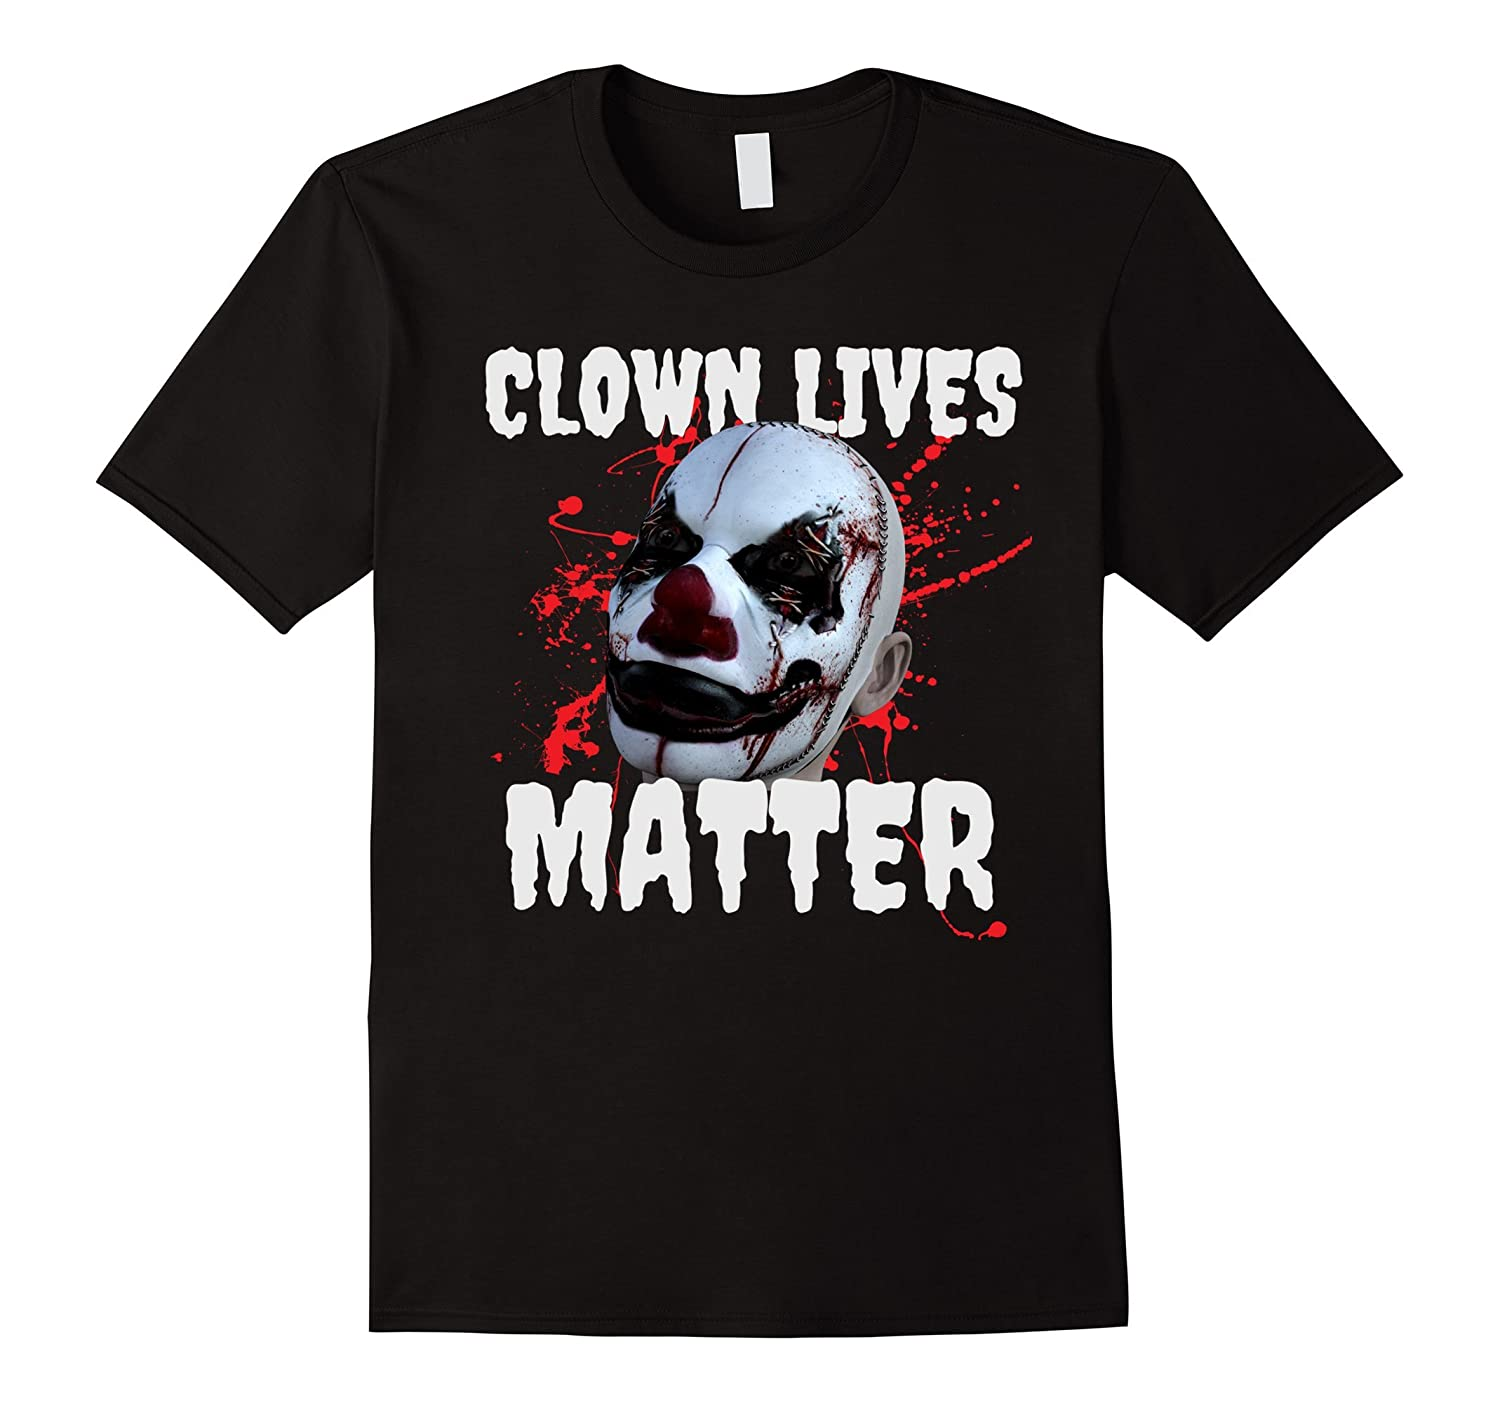 Clown Lives Matter Parody Shirt - Creepy Scary Horror Tee-TJ